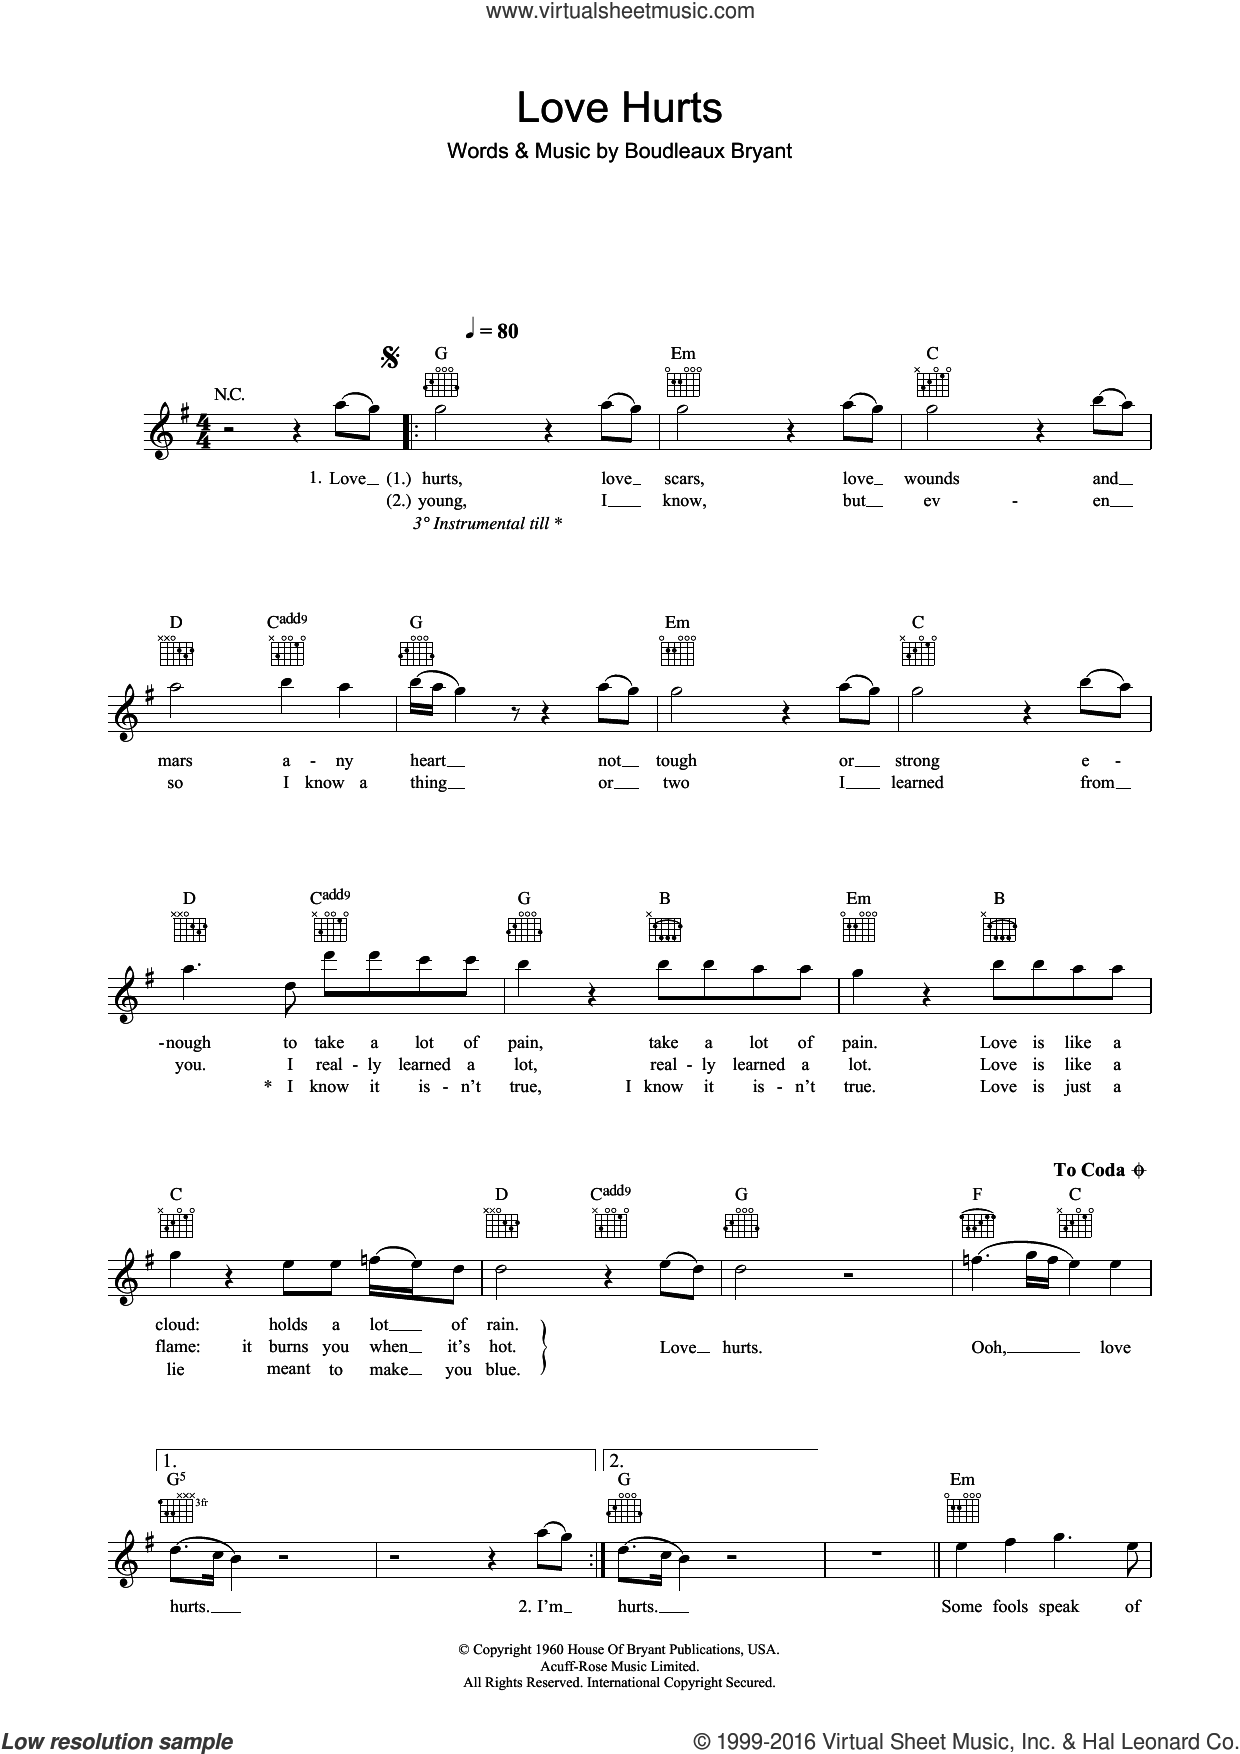 Love Hurts sheet music for voice and other instruments (fake book) by Nazareth and Boudleaux Bryant. Score Image Preview.